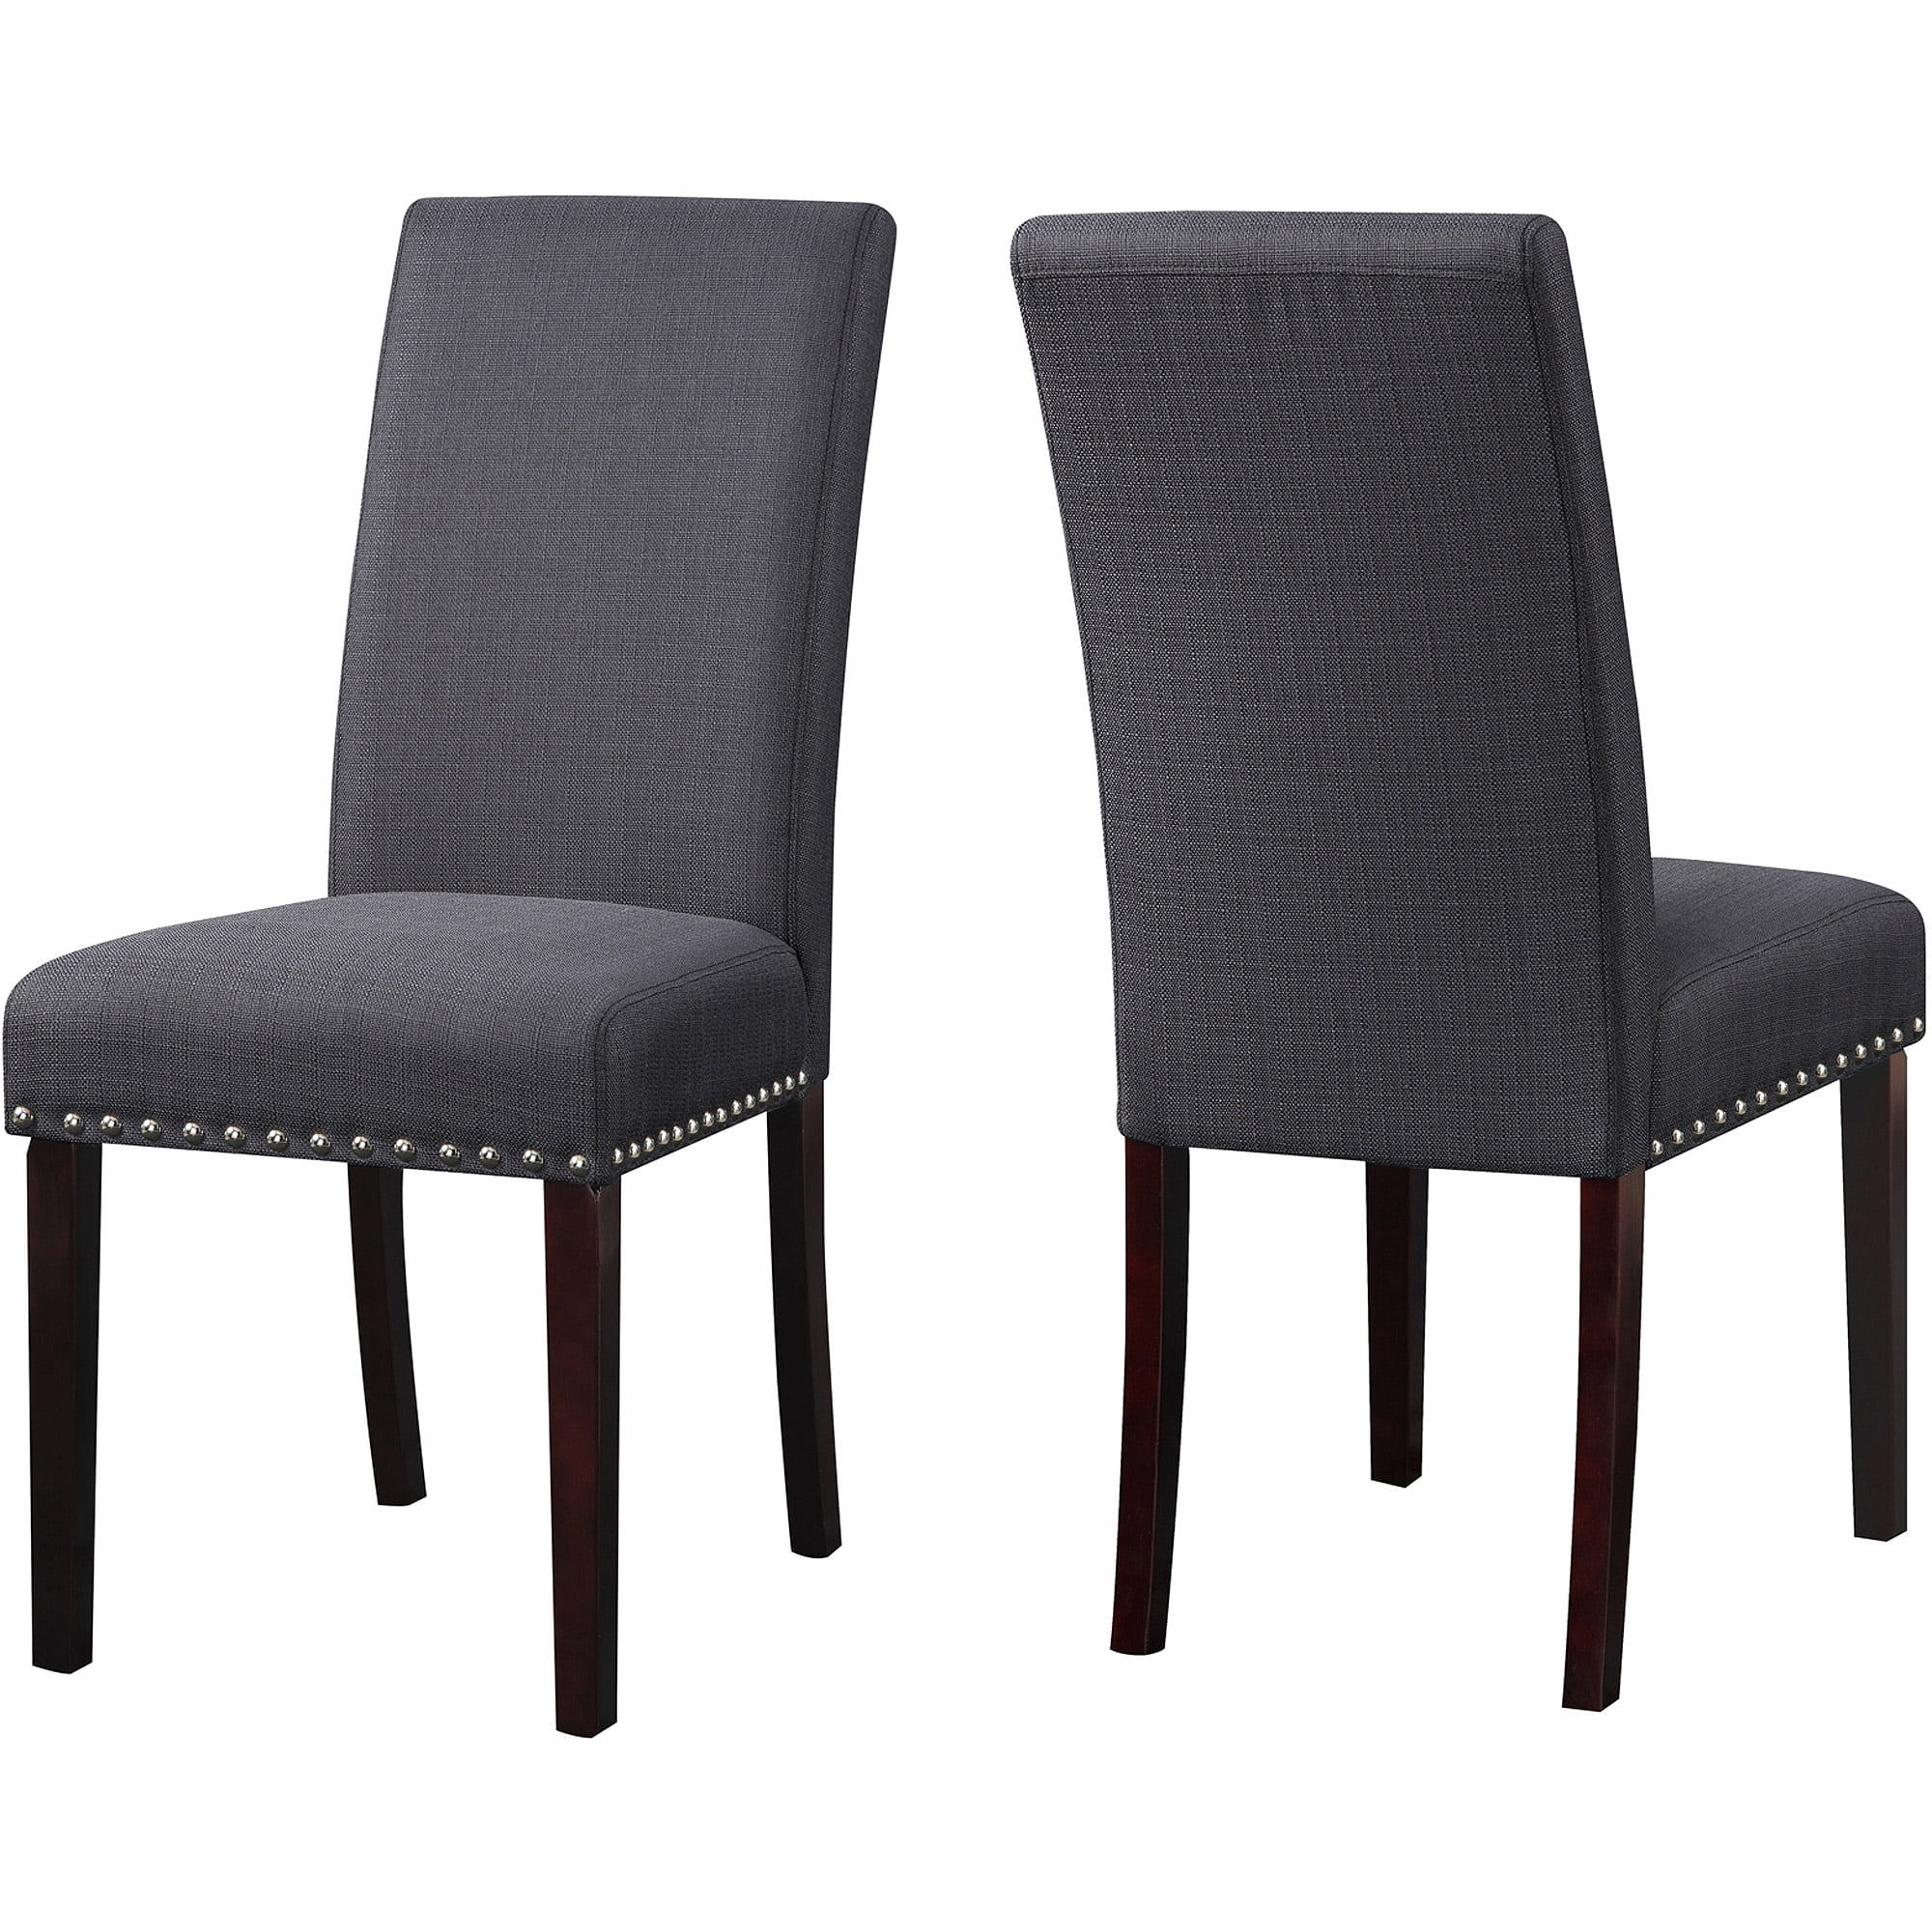 Dhi nice nail head upholstered dining chair 2 pack multiple colors walmart com